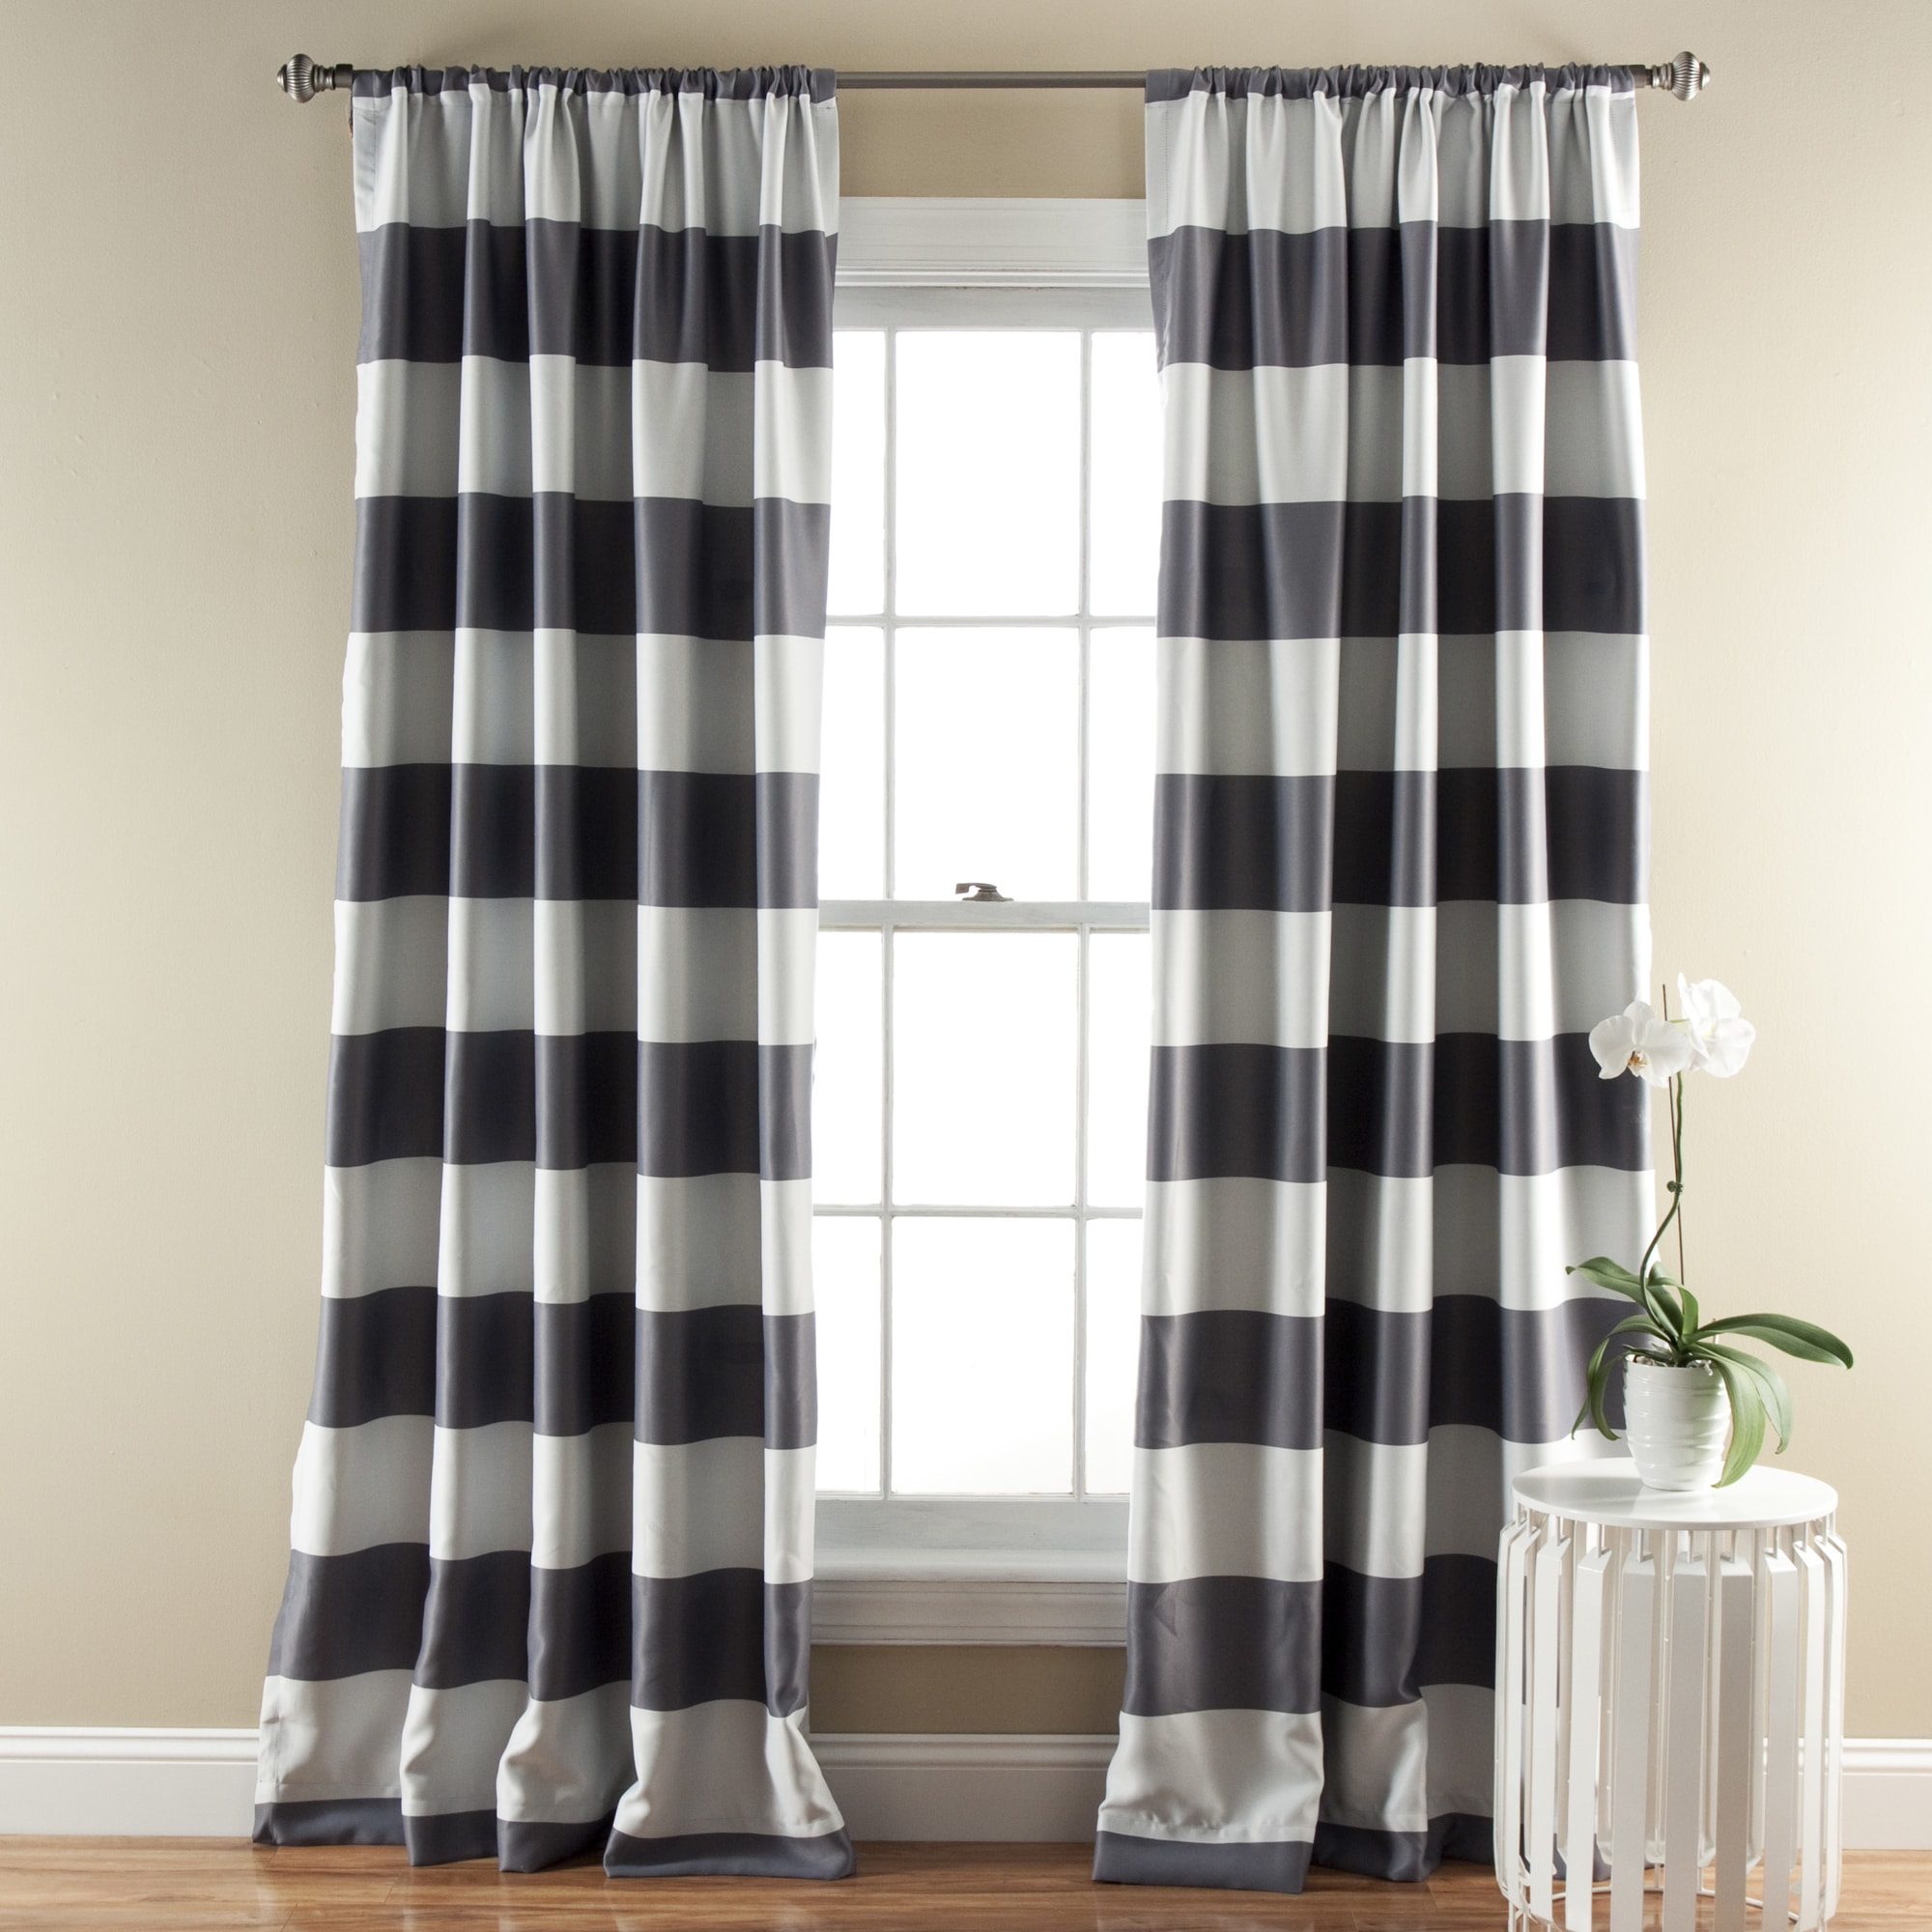 Lush Decor Horizontal Stripe Blackout 84-Inch Curtain Panel Pair - 52 x 84  - Free Shipping Today - Overstock.com - 16685155